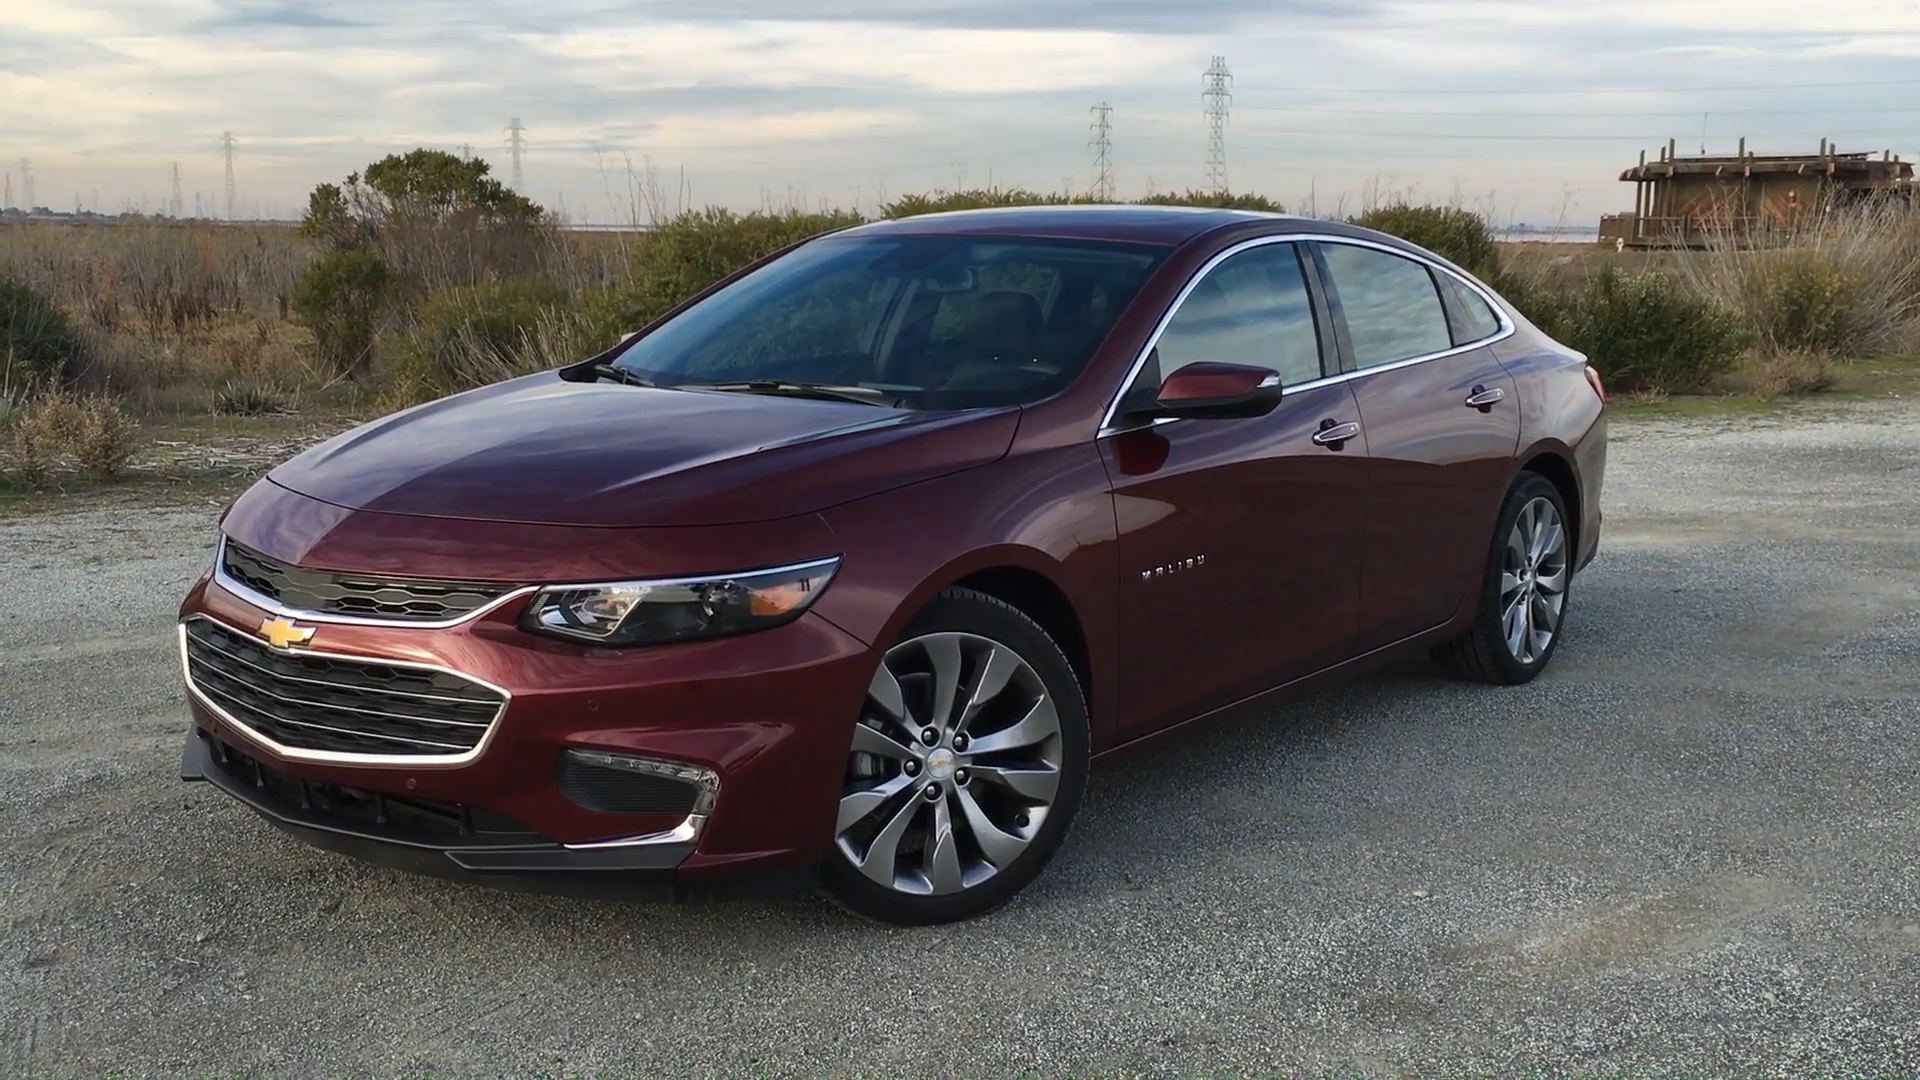 2018 Chevrolet Malibu Buyer's Guide: specs, safety, fuel economy, and more  - Autoblog